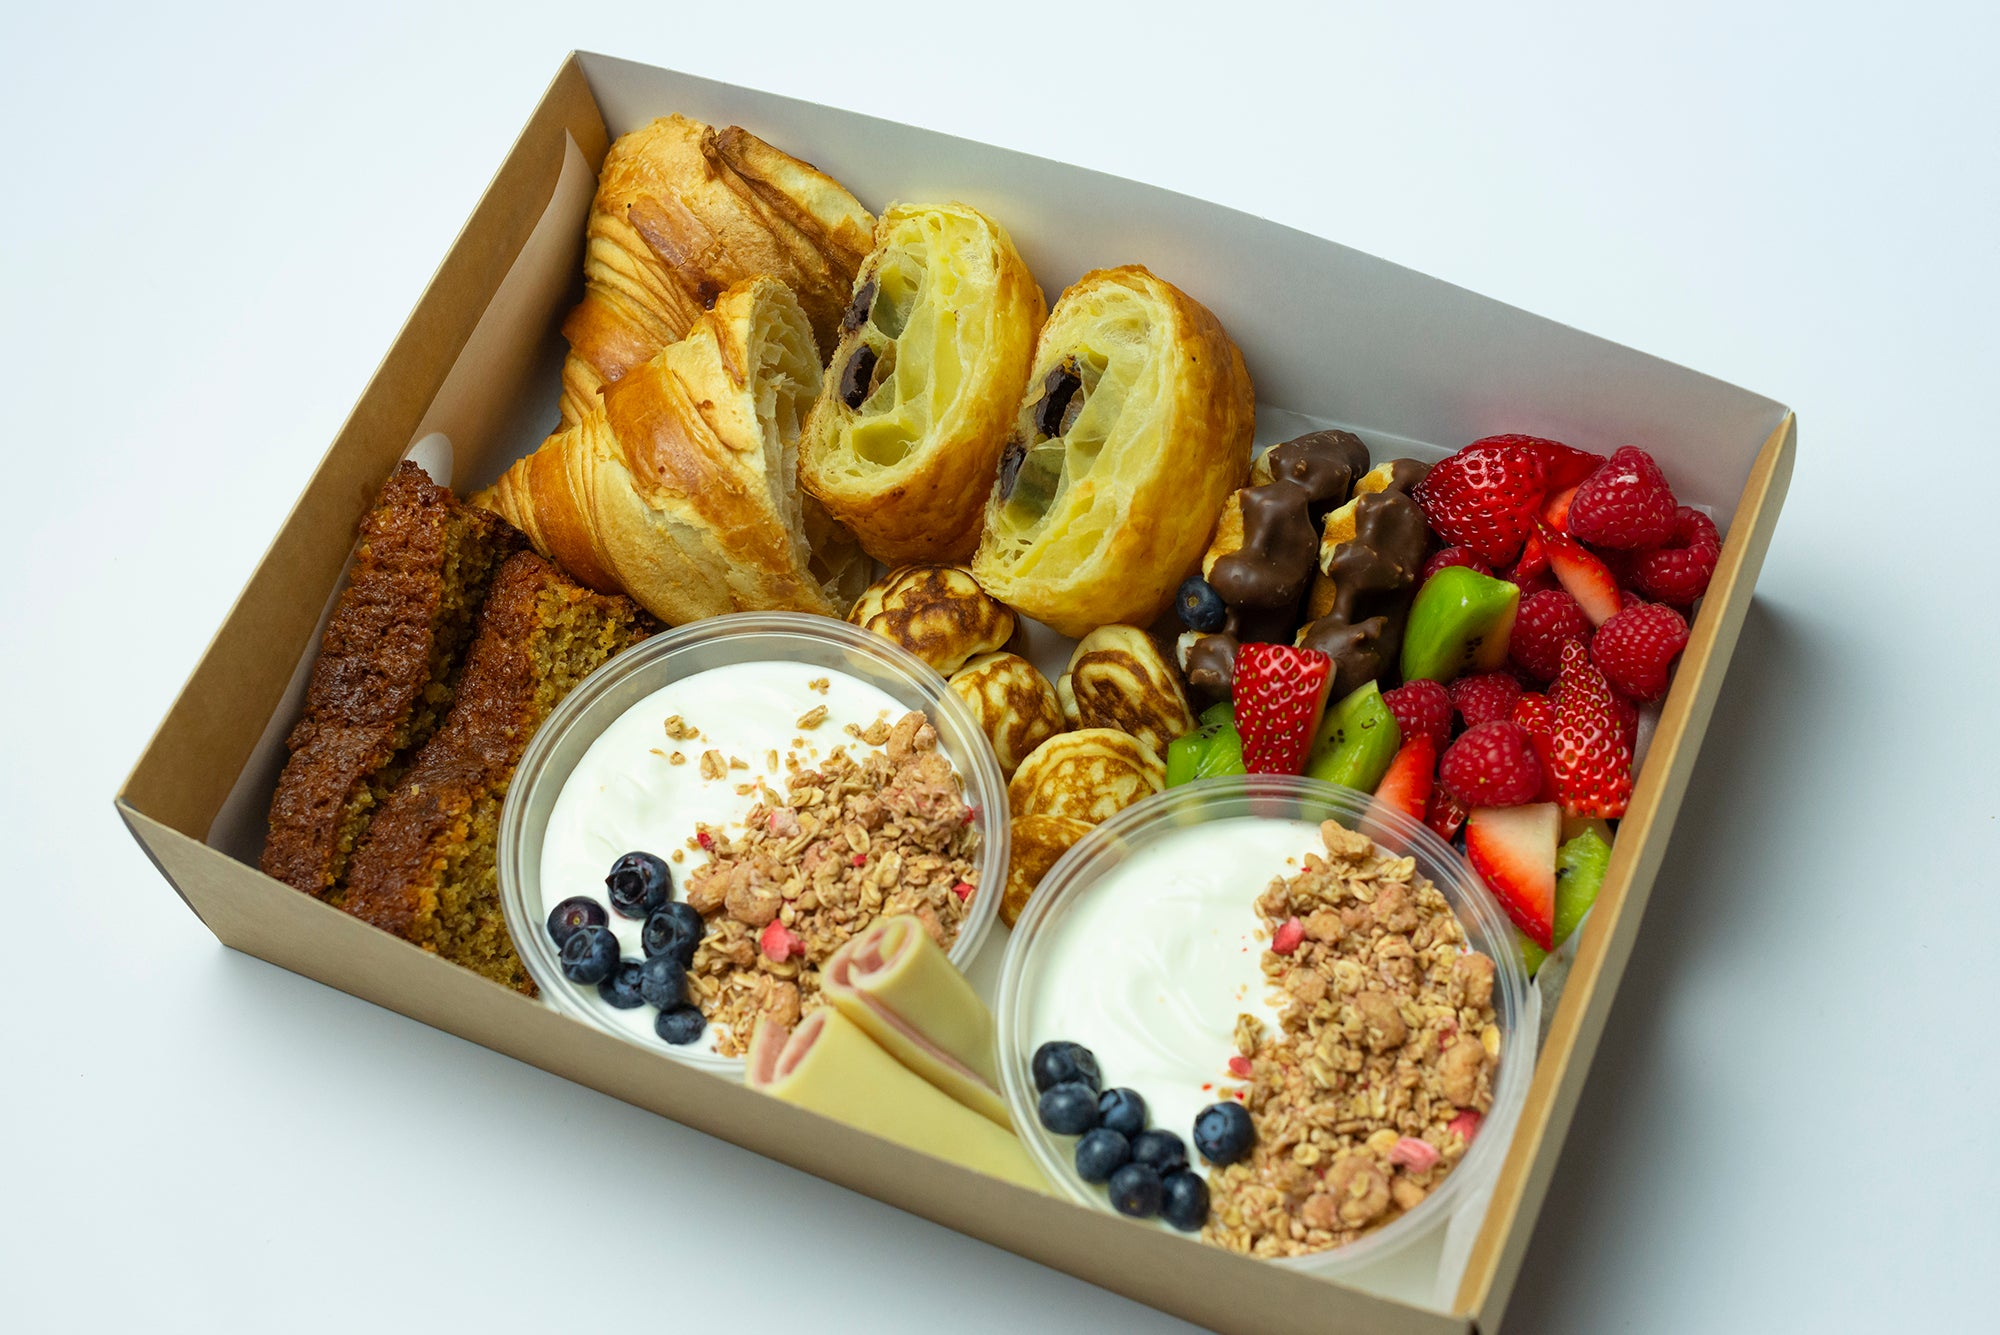 The Breakfast Brunch Box